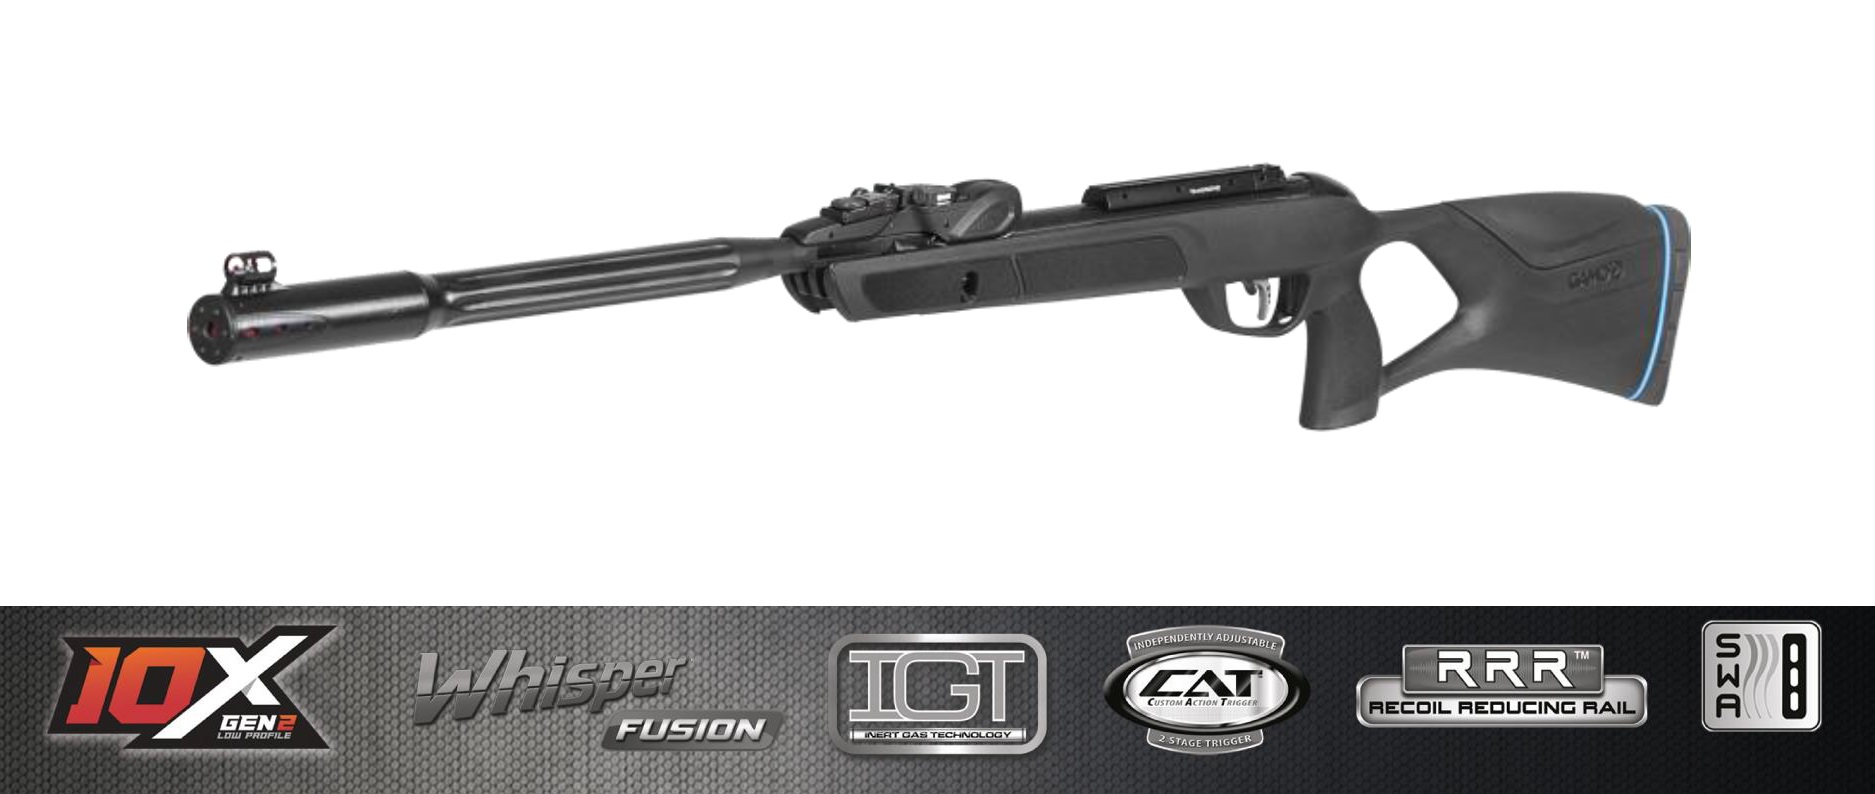 GAMO ROADSTER IGT 10X GEN2 AIRGUN